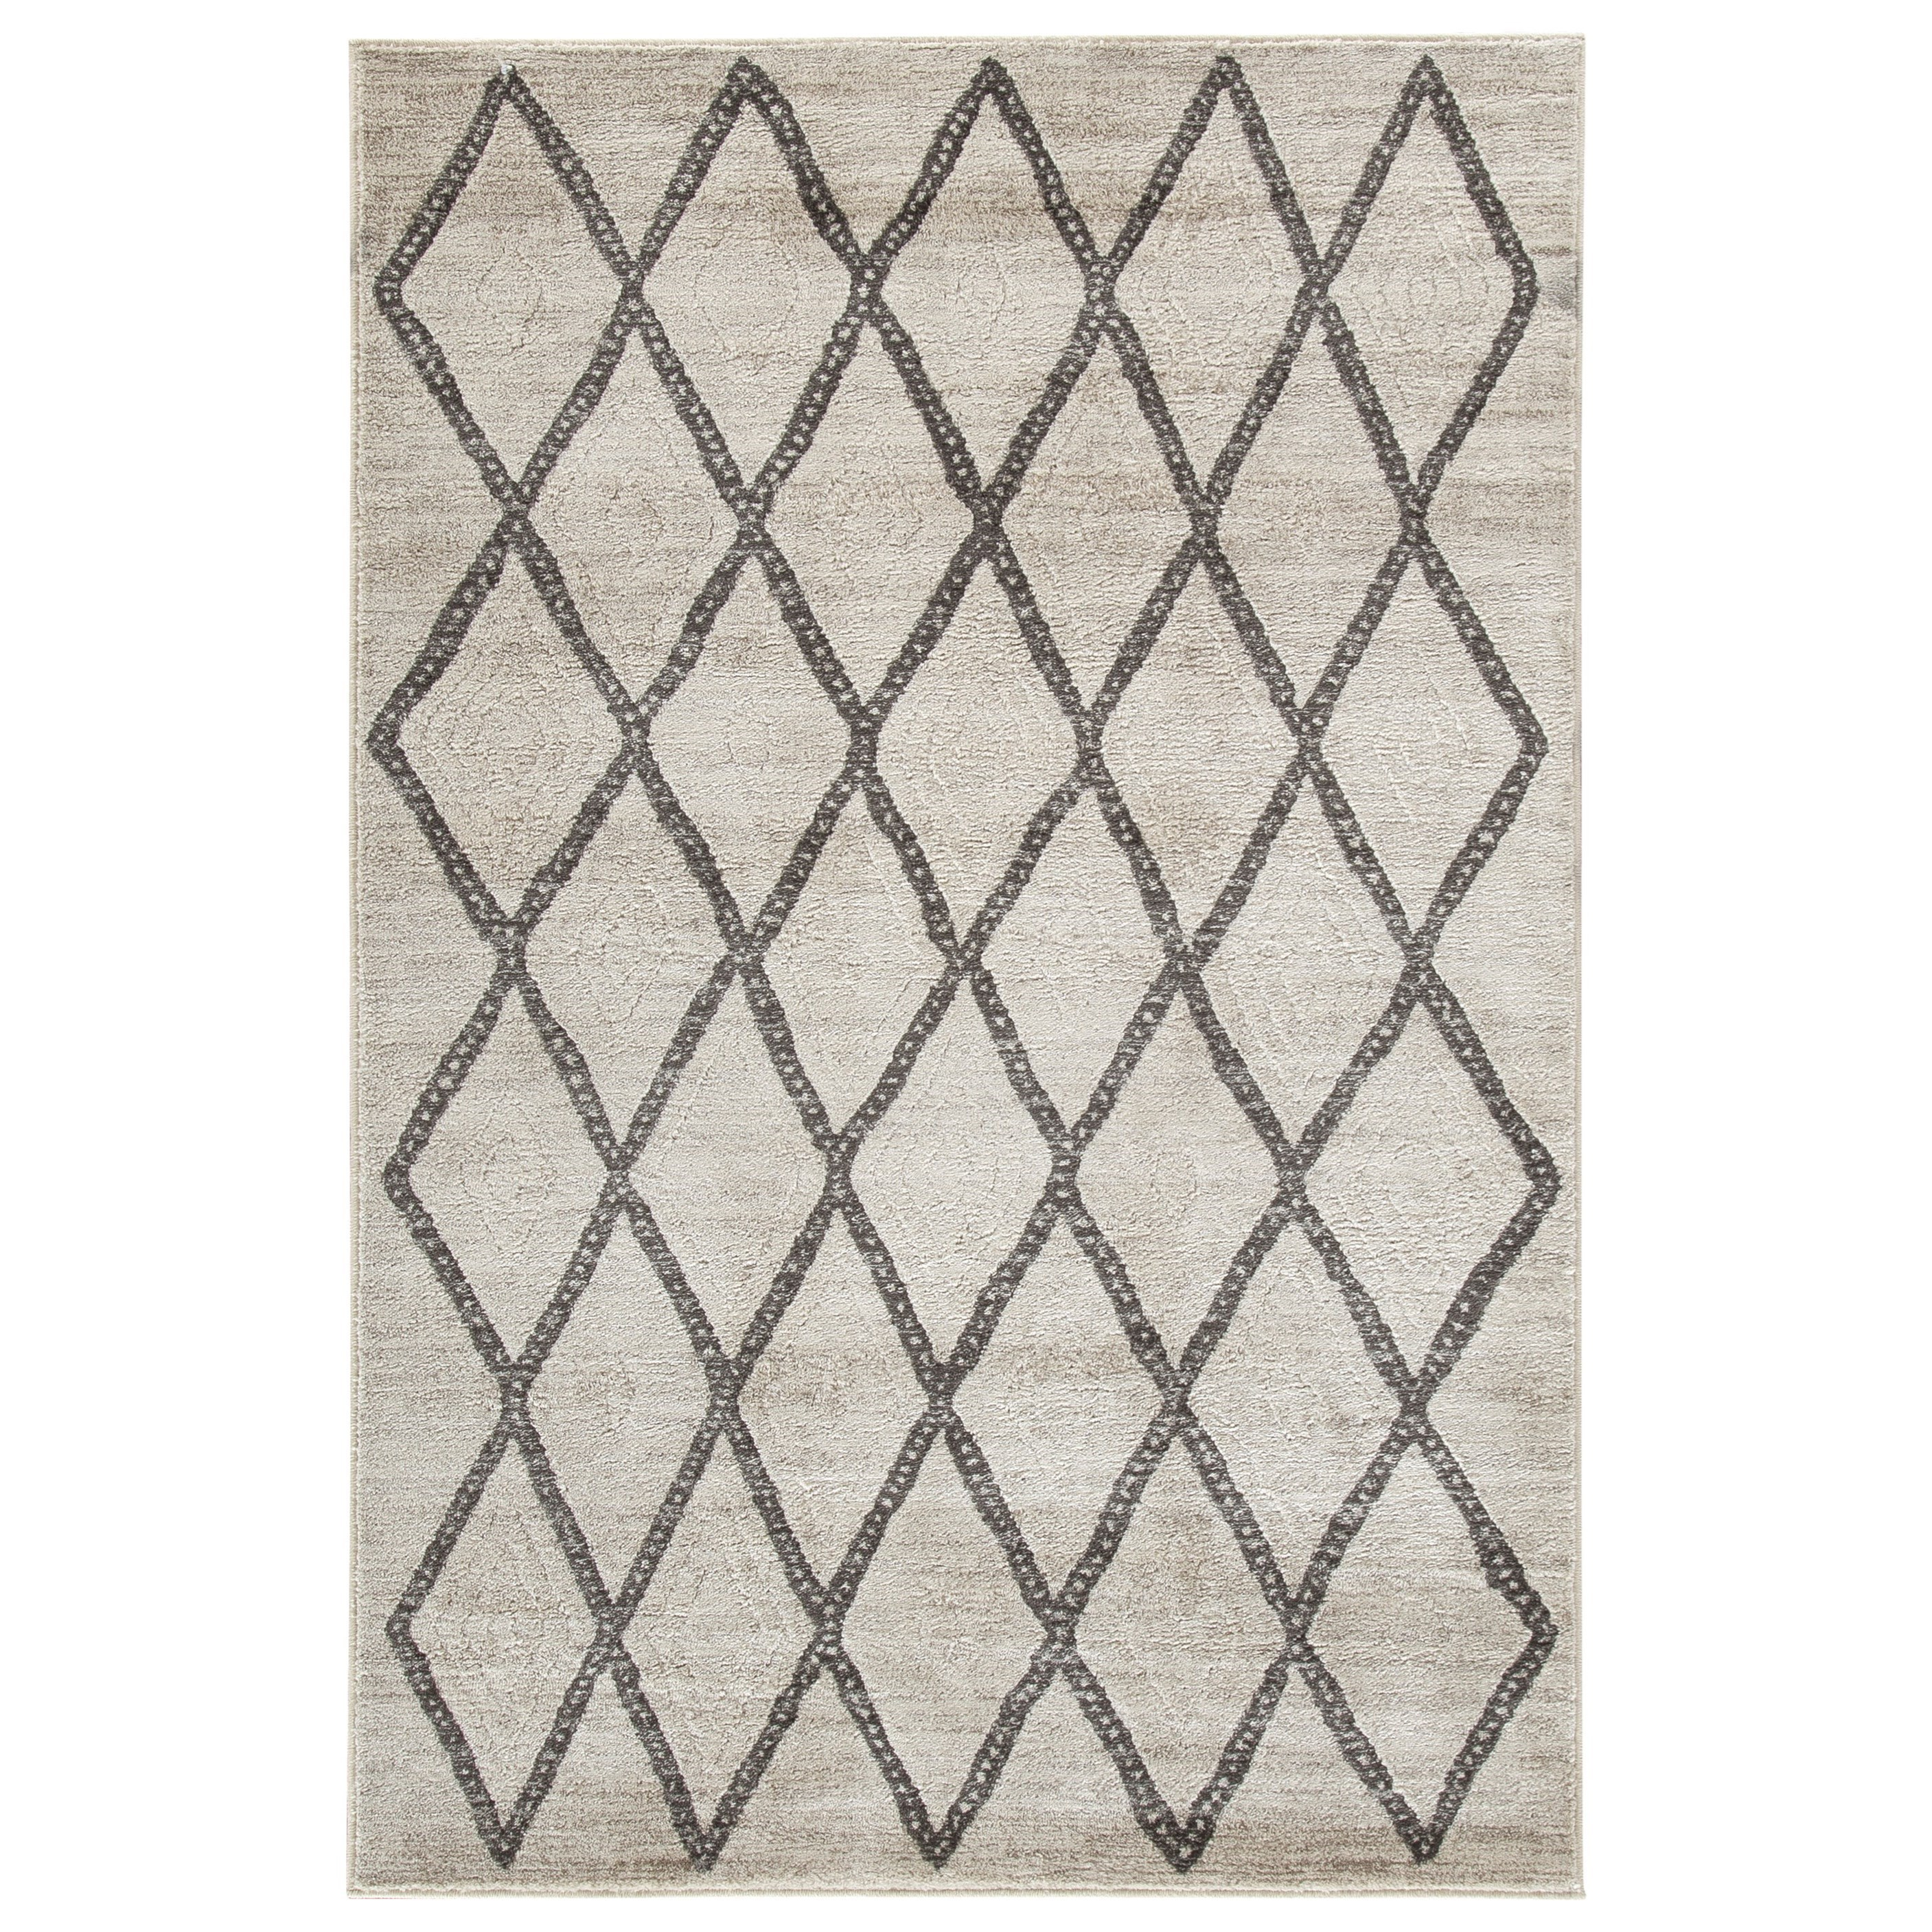 Casual Area Rugs Jarmo Gray/Taupe Medium Rug by Signature at Walker's Furniture